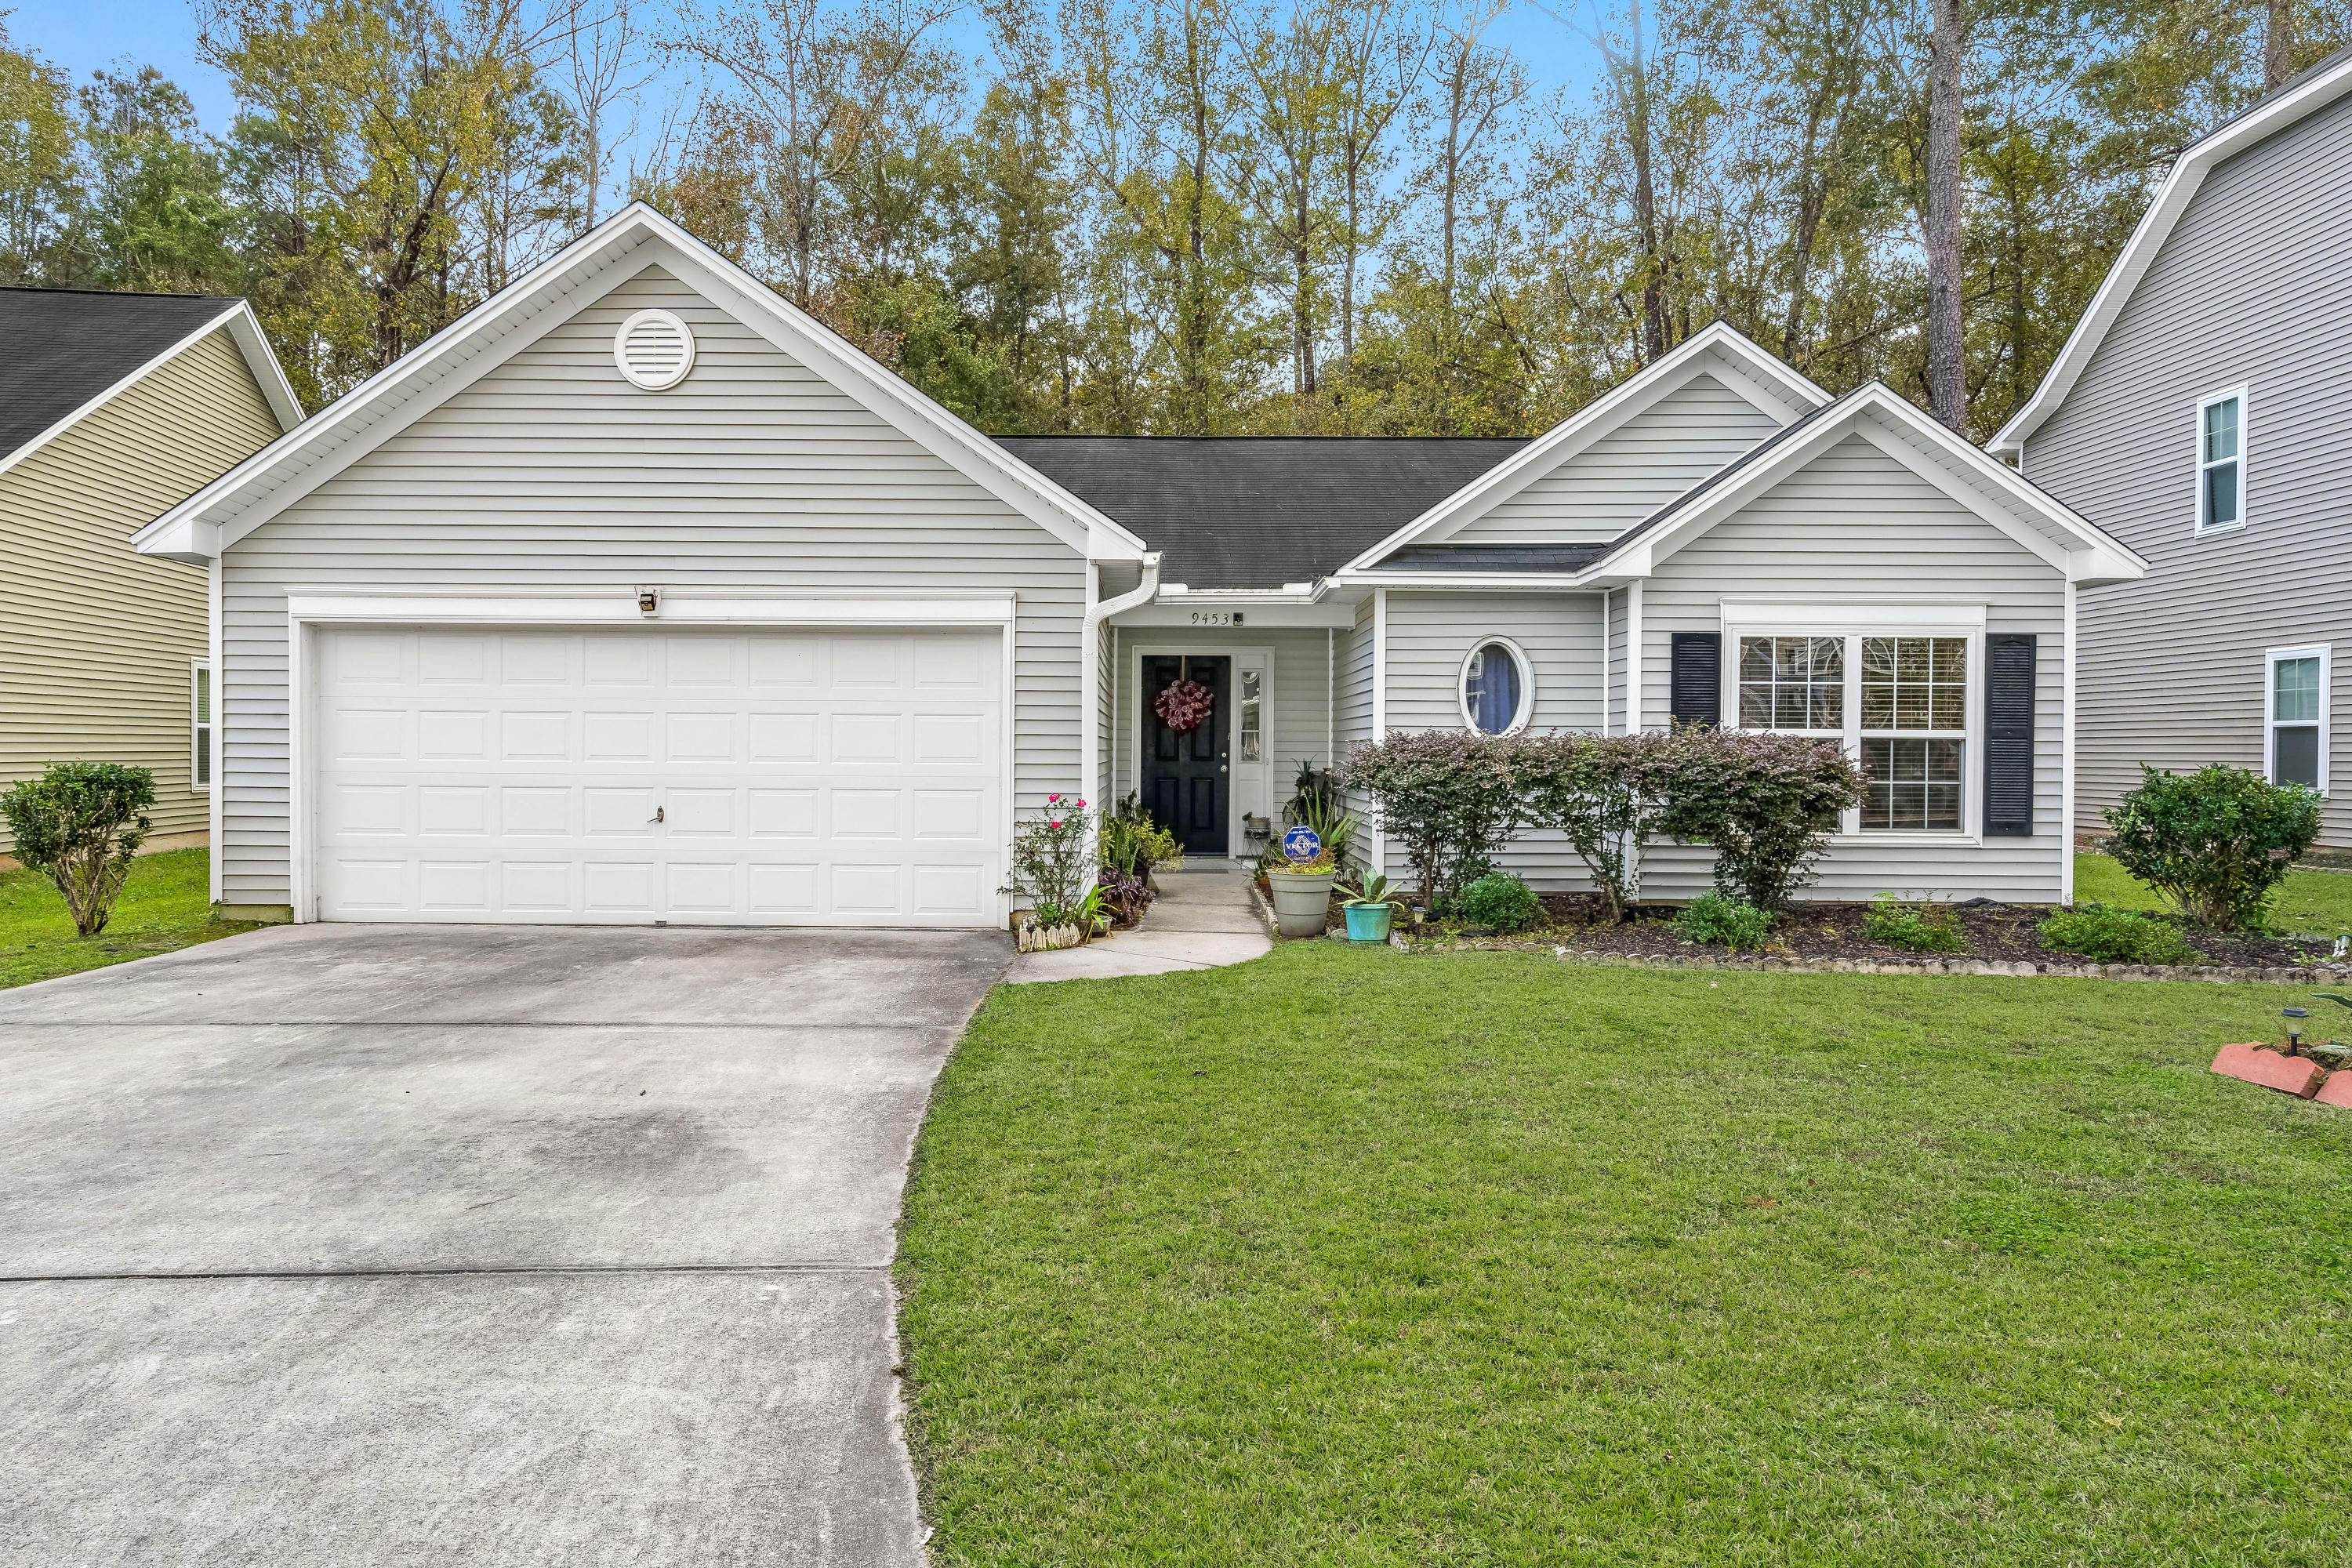 9453 Netted Charm Court Ladson, SC 29456